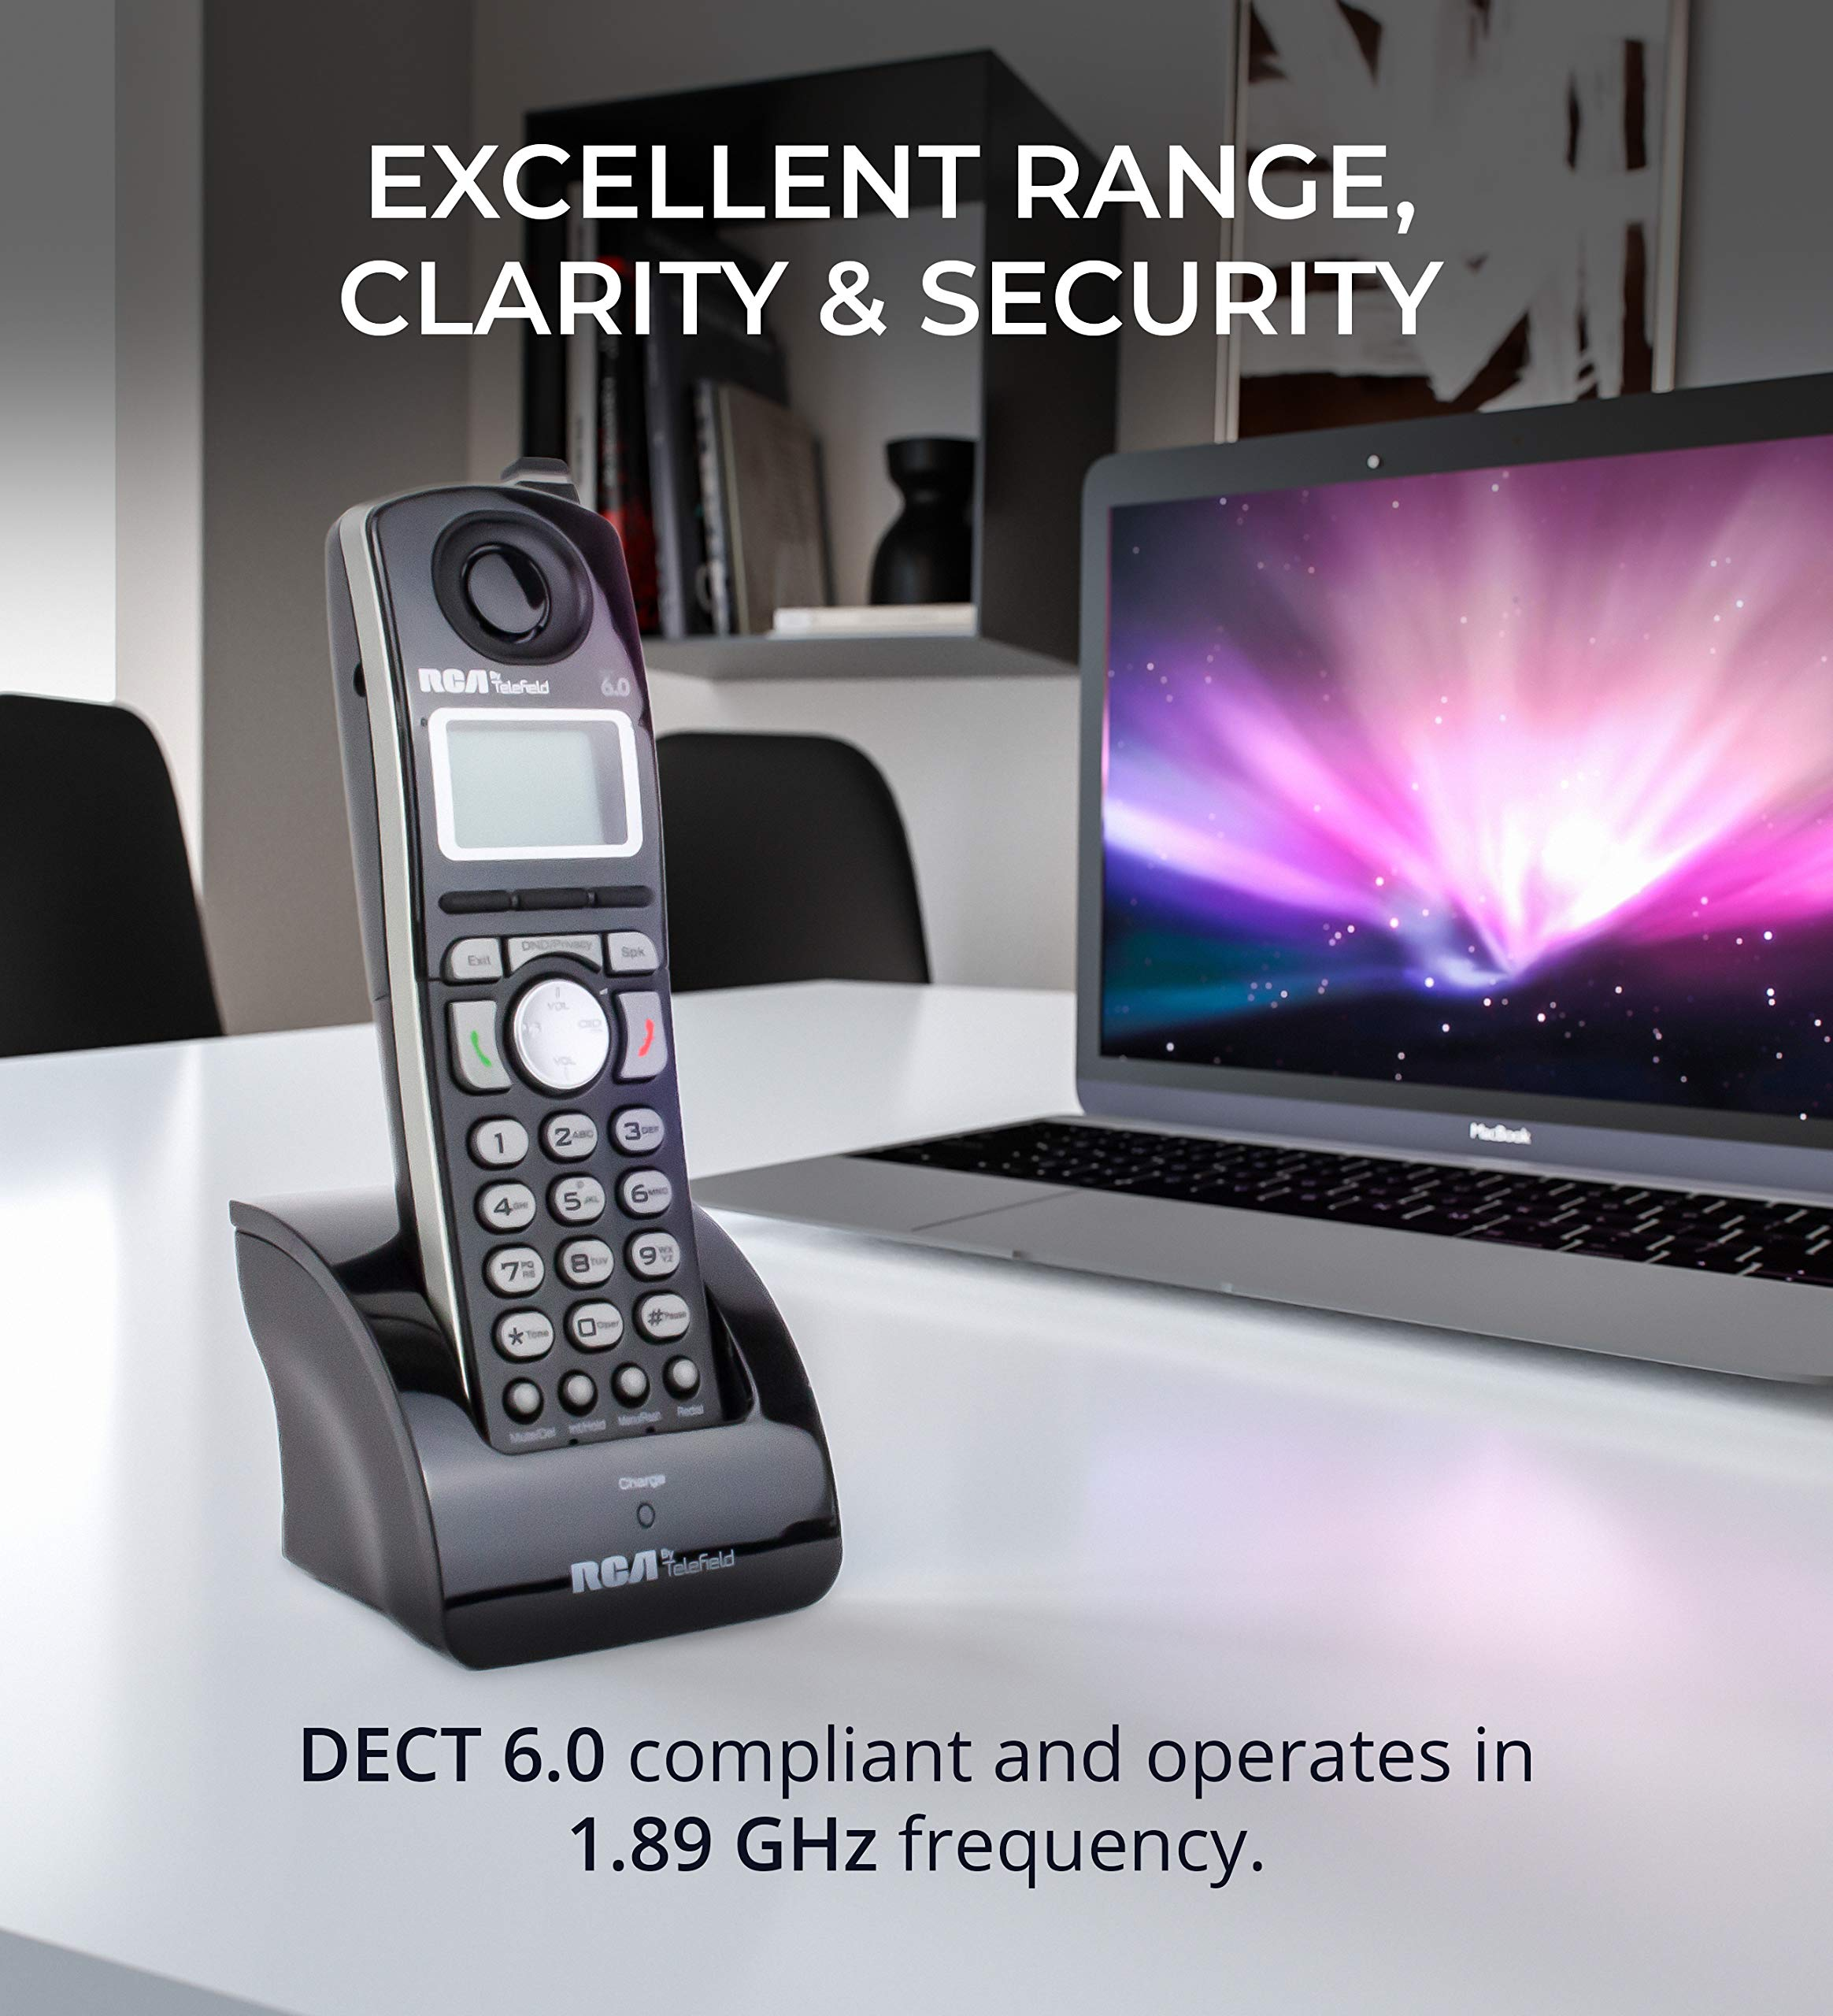 RCA 25260 2-Line Expandable Phone System - Full Duplex Telephone with Built-in Intercom Bundle with RCA 25055RE1 DECT 6.0 Cordless Accessory Handsets (3-Pack) and 6 Blucoil AA Batteries by blucoil (Image #7)